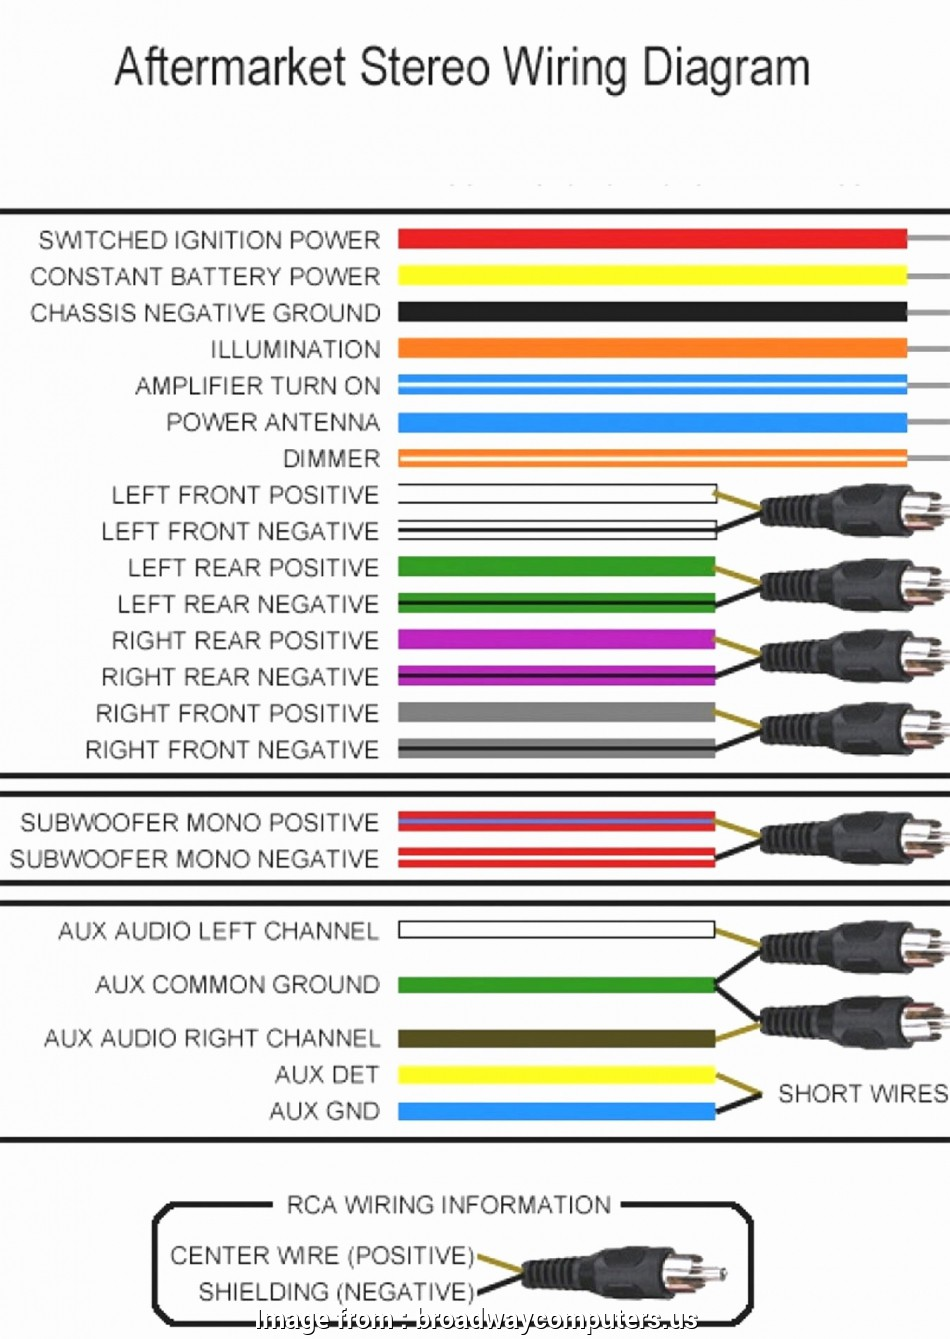 wire harness color code - wiring diagram for jeep dj 5 1970 -  light-switch.1997wir.jeanjaures37.fr  wiring diagram resource